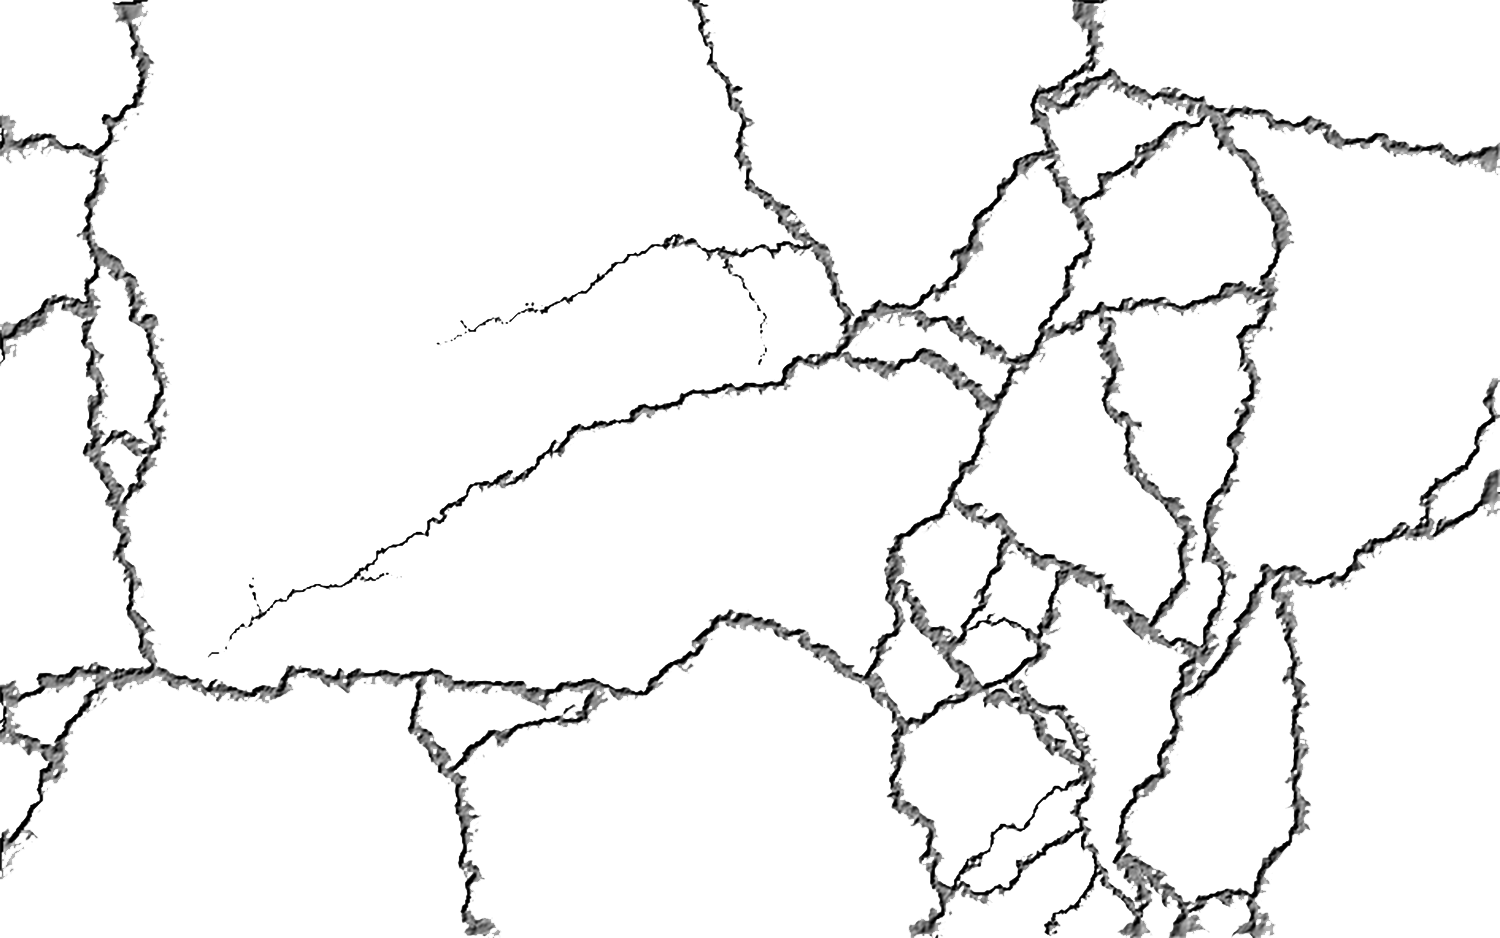 Wall crack png. Lines transprent free download